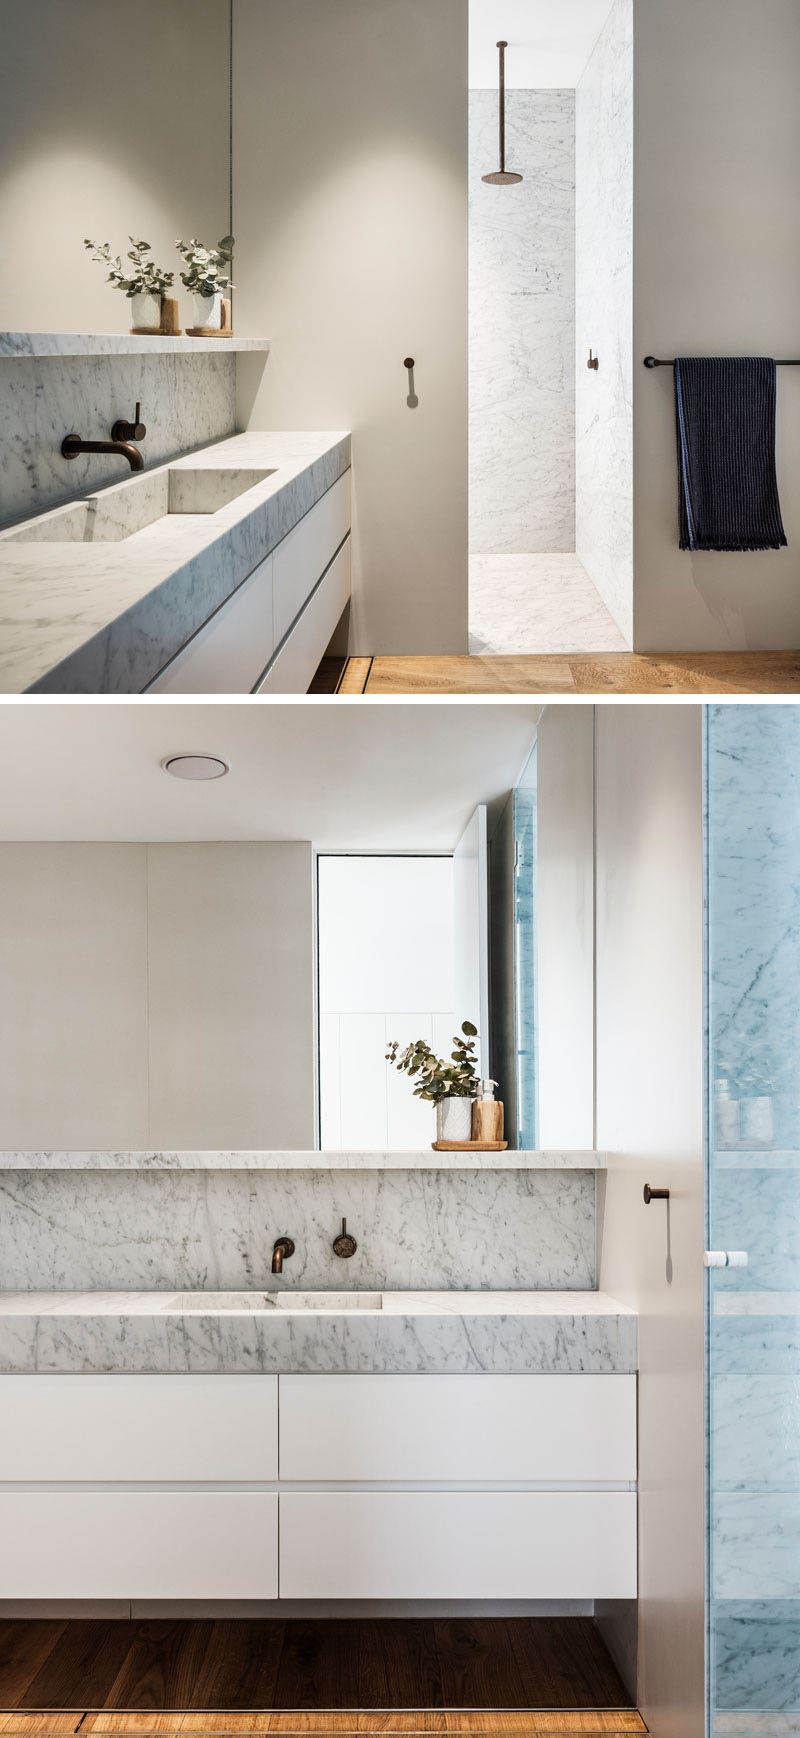 In this modern bathroom, a light grey stone countertop sits on a white vanity, and a walk-in shower has a simple rainfall shower head. #ModernBathroom #BathroomDesign